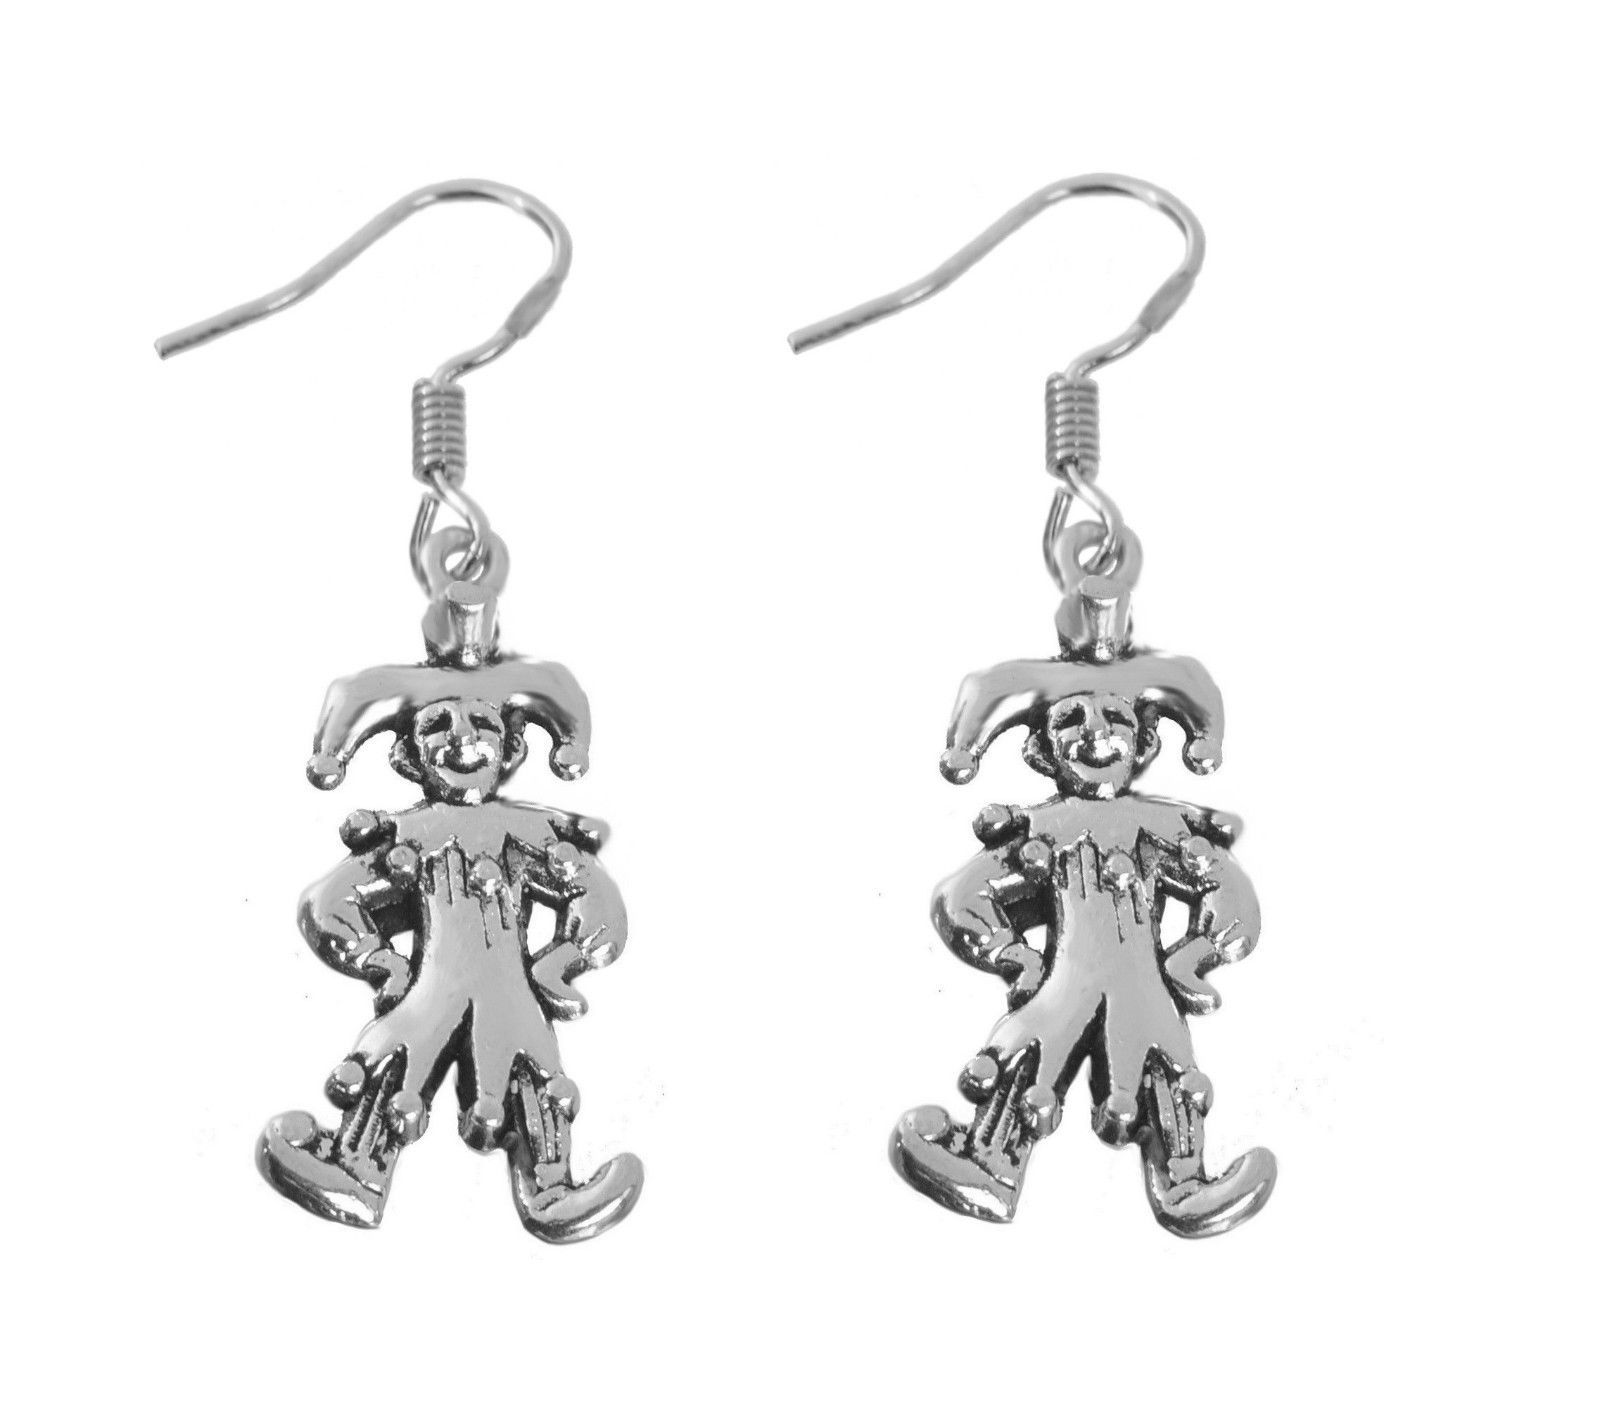 NICE Sterling Silver 925 medieval Court Jester Joker Clown Funny entertainer Ear